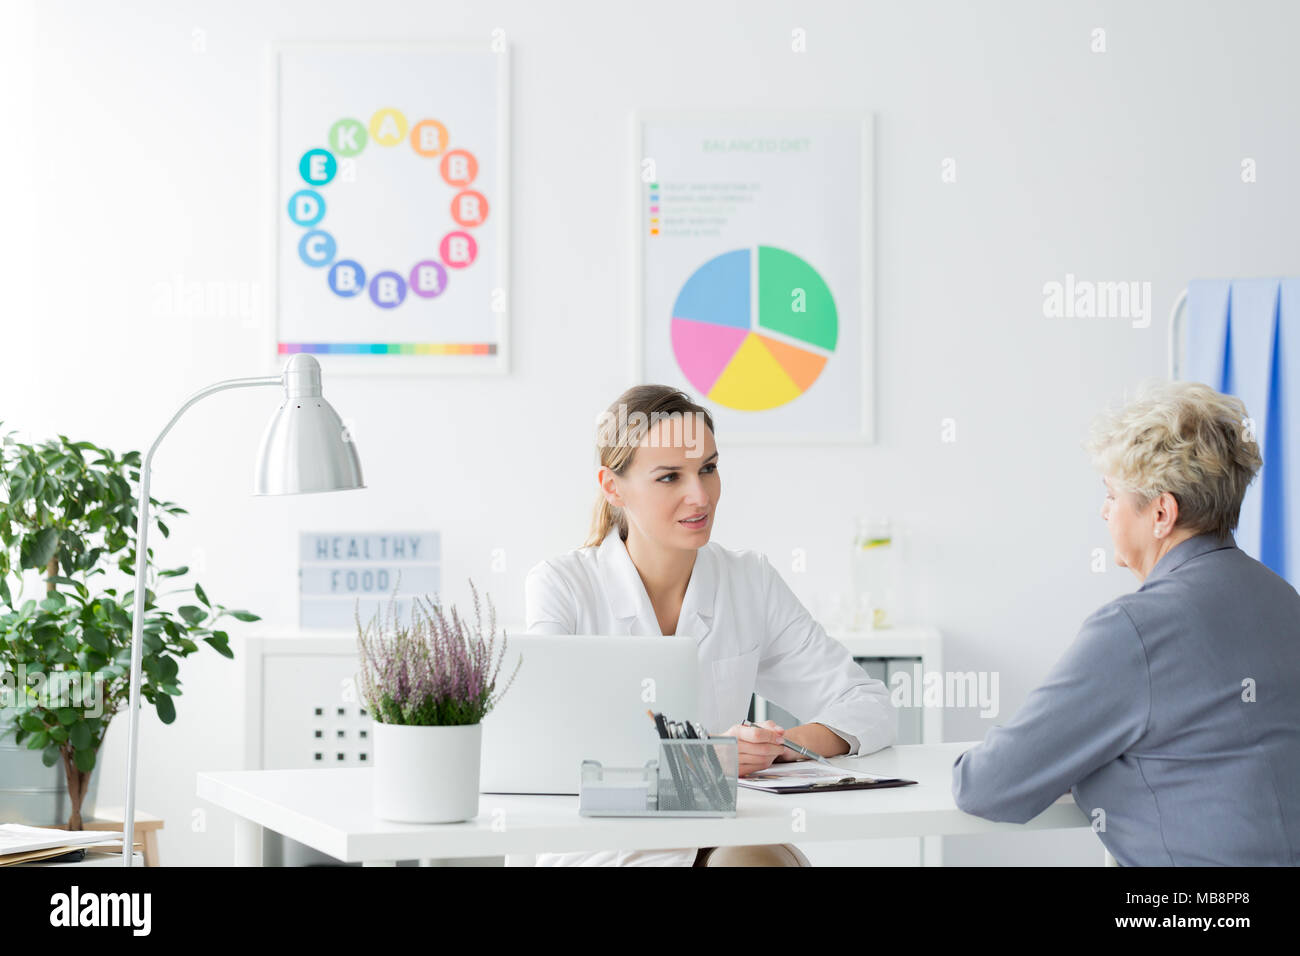 Elderly woman talking to a female doctor at a diet consultation in a bright office - Stock Image